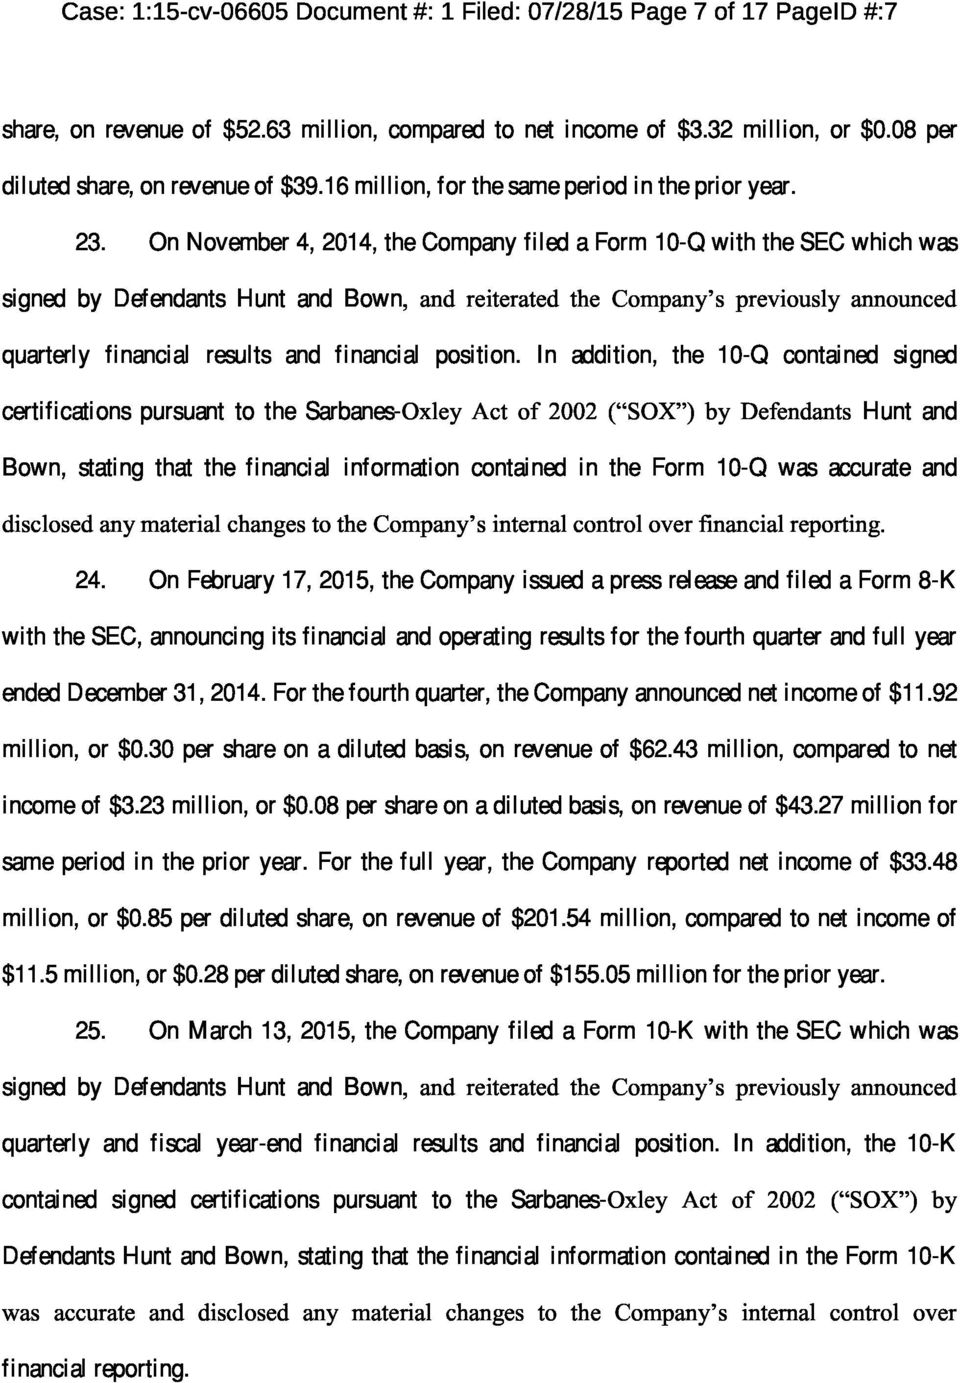 On November 4, 2014, the Company filed a Form 10-Q with the SEC which was signed by Defendants Hunt and Bown, and reiterated the Company s previously announced quarterly financial results and